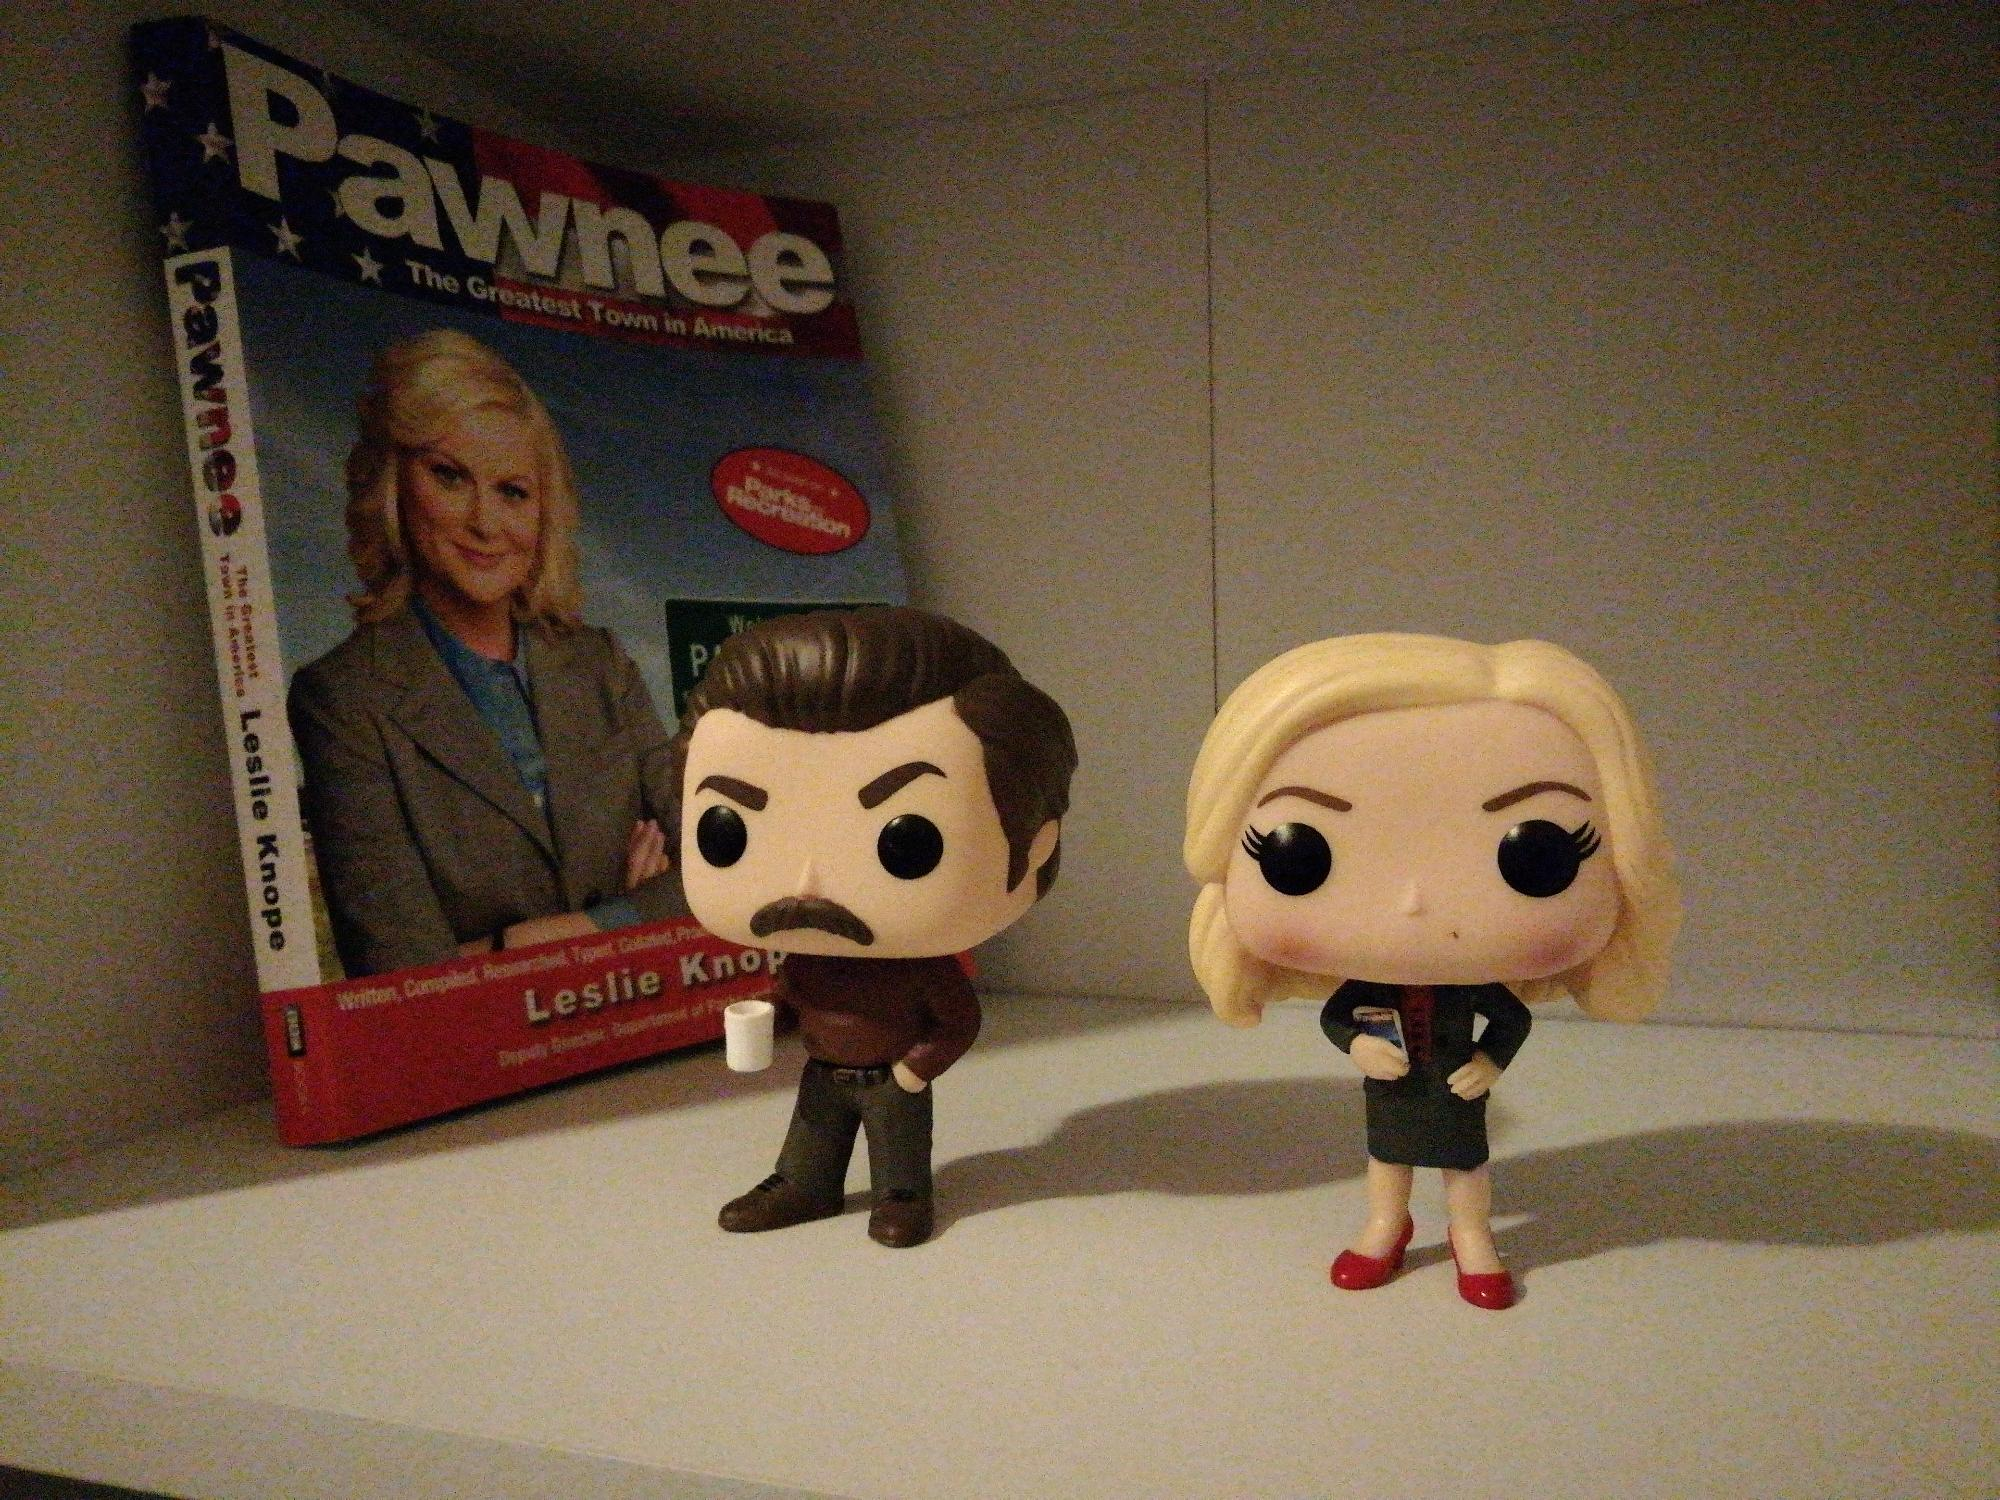 Leslie knope and Ron swanson pop vinyl and pawnee book I got for Christmas